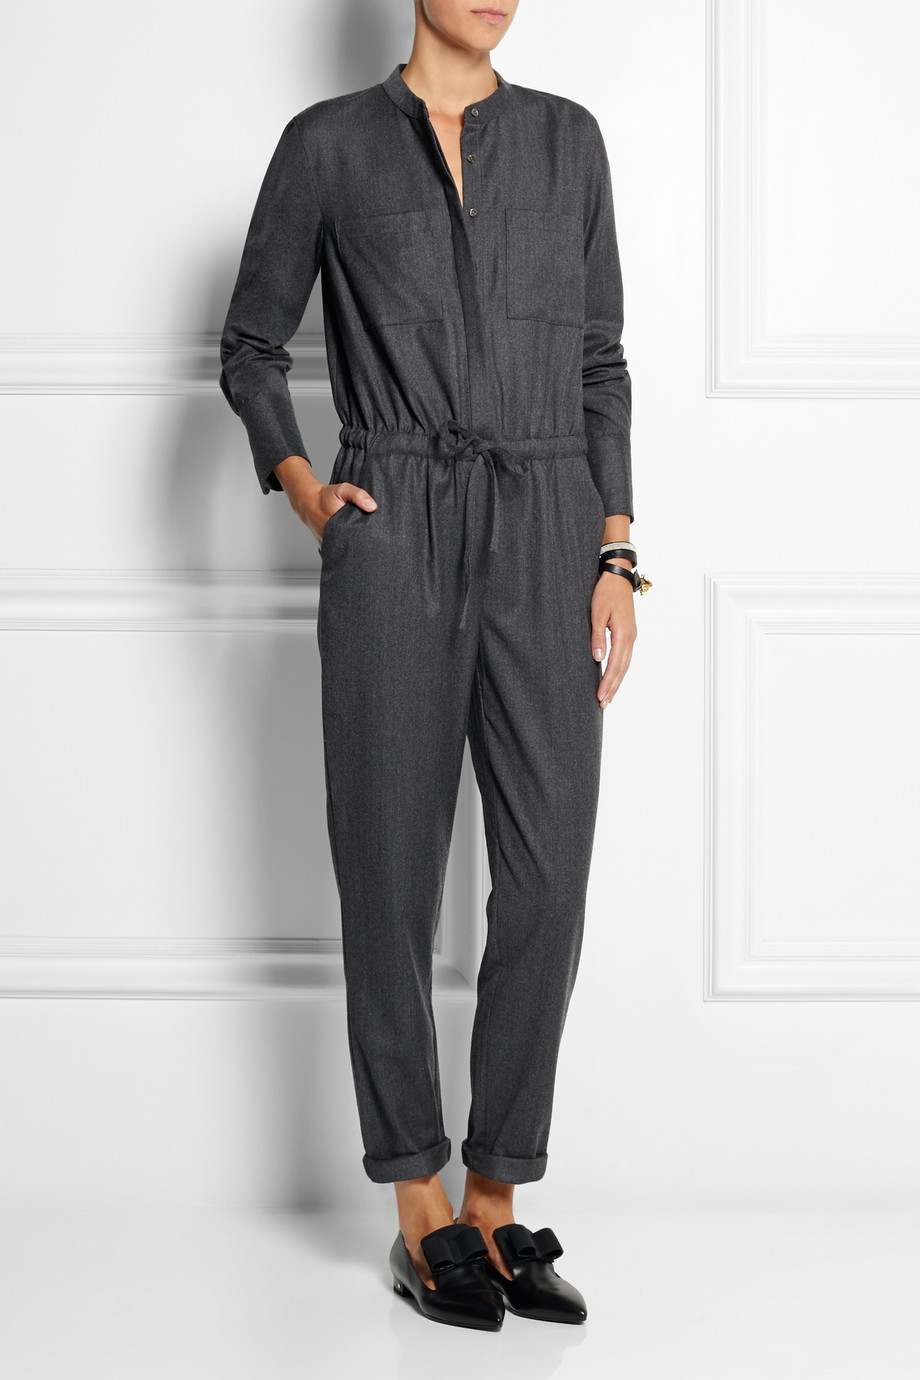 J Crew - Wool Jumpsuit £300